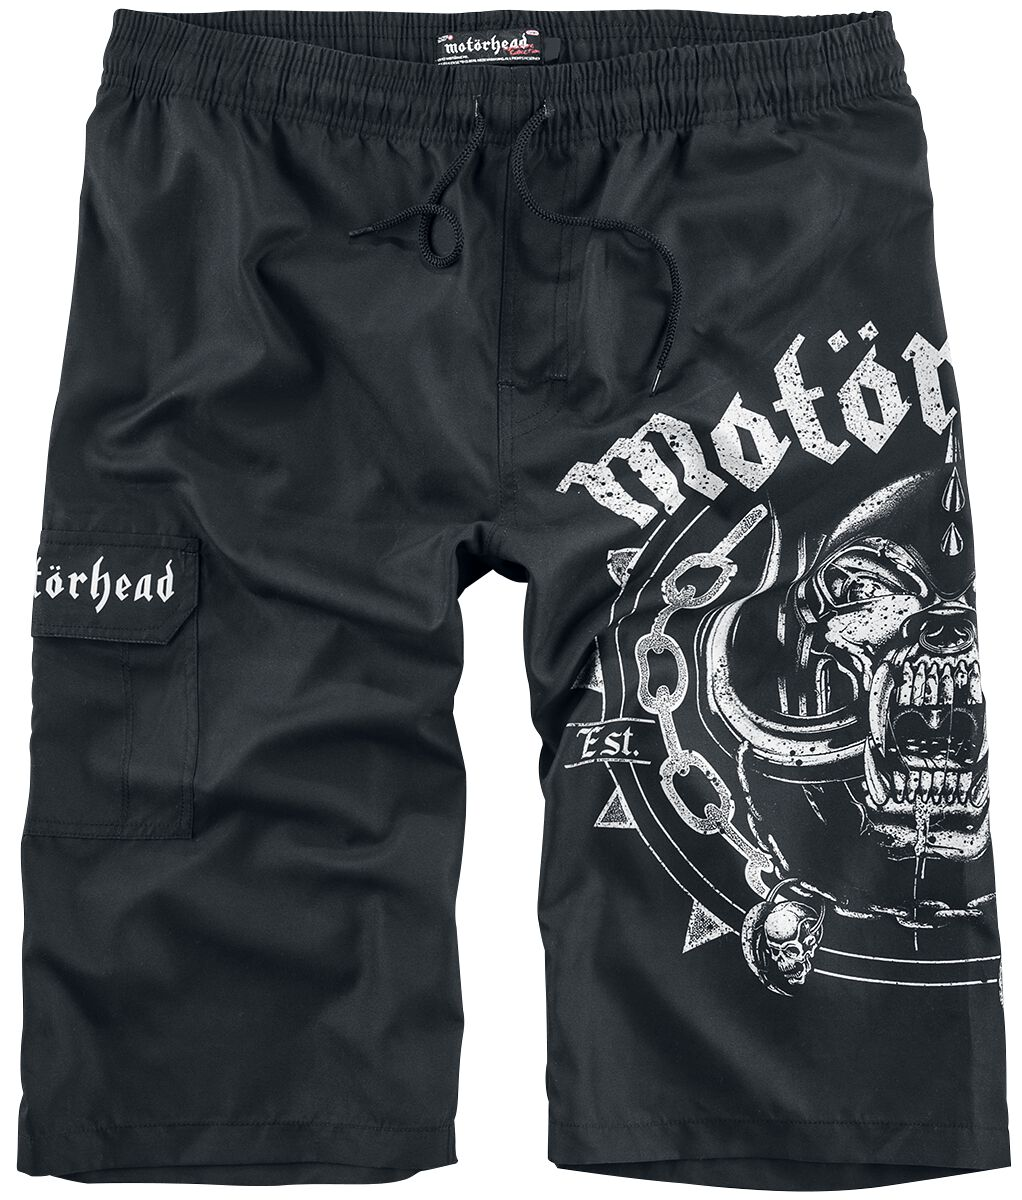 Image of   Motörhead EMP Signature Collection Badeshorts sort